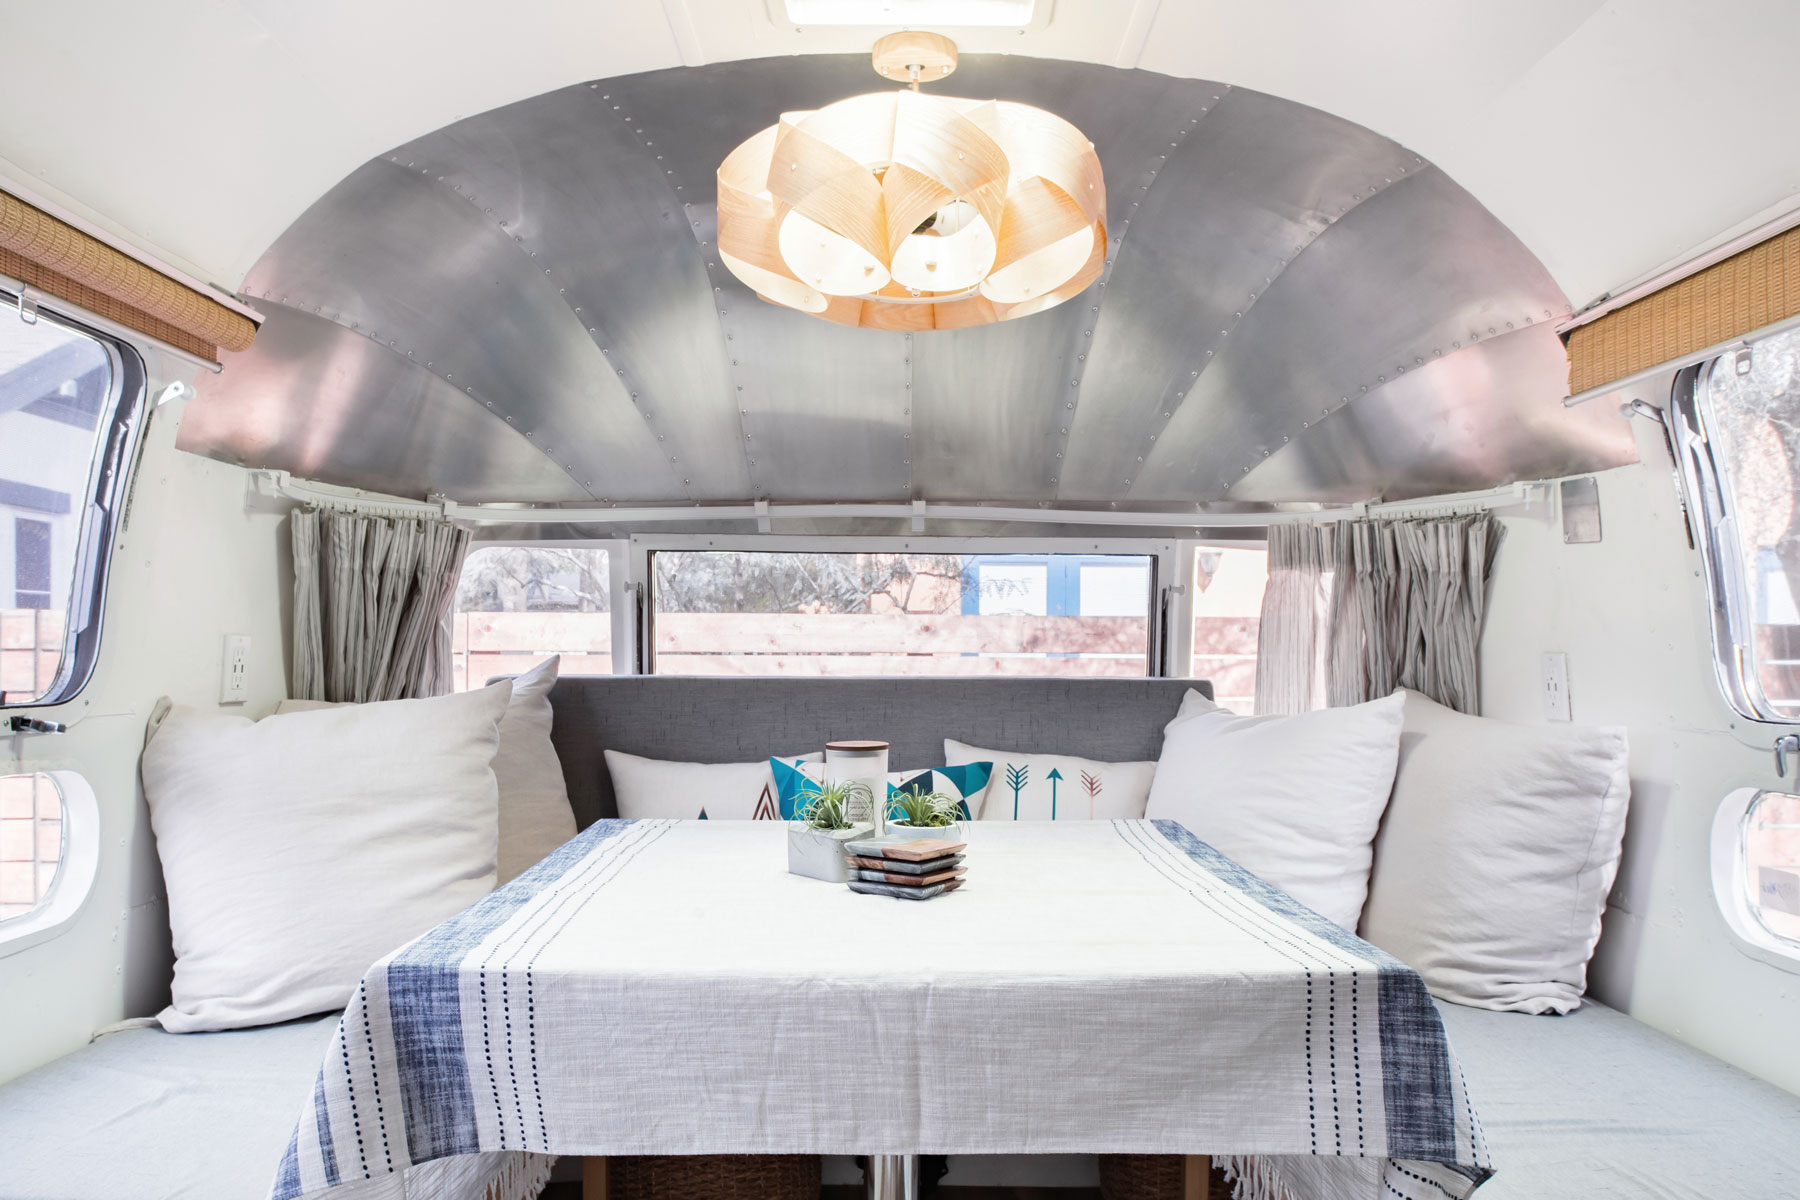 Table and seating in airstream trailer